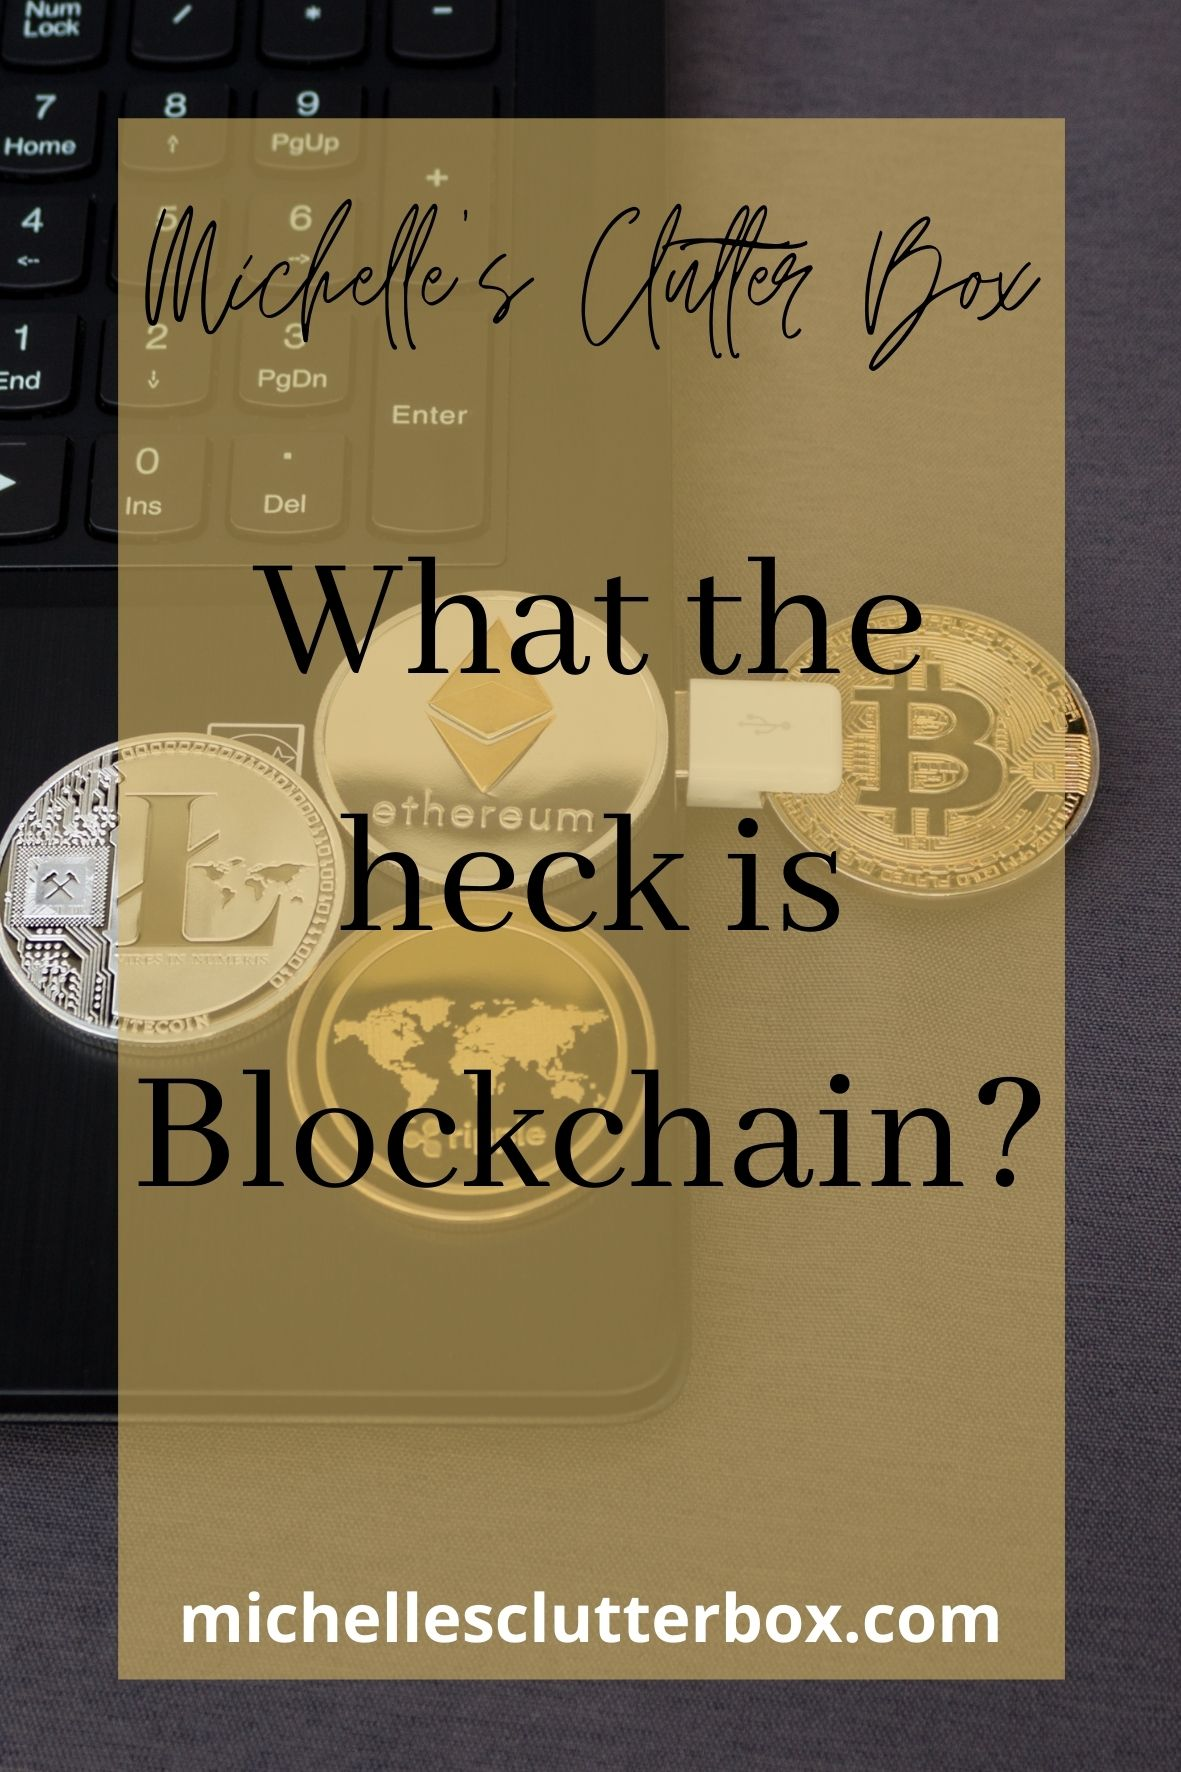 What the heck is Blockchain